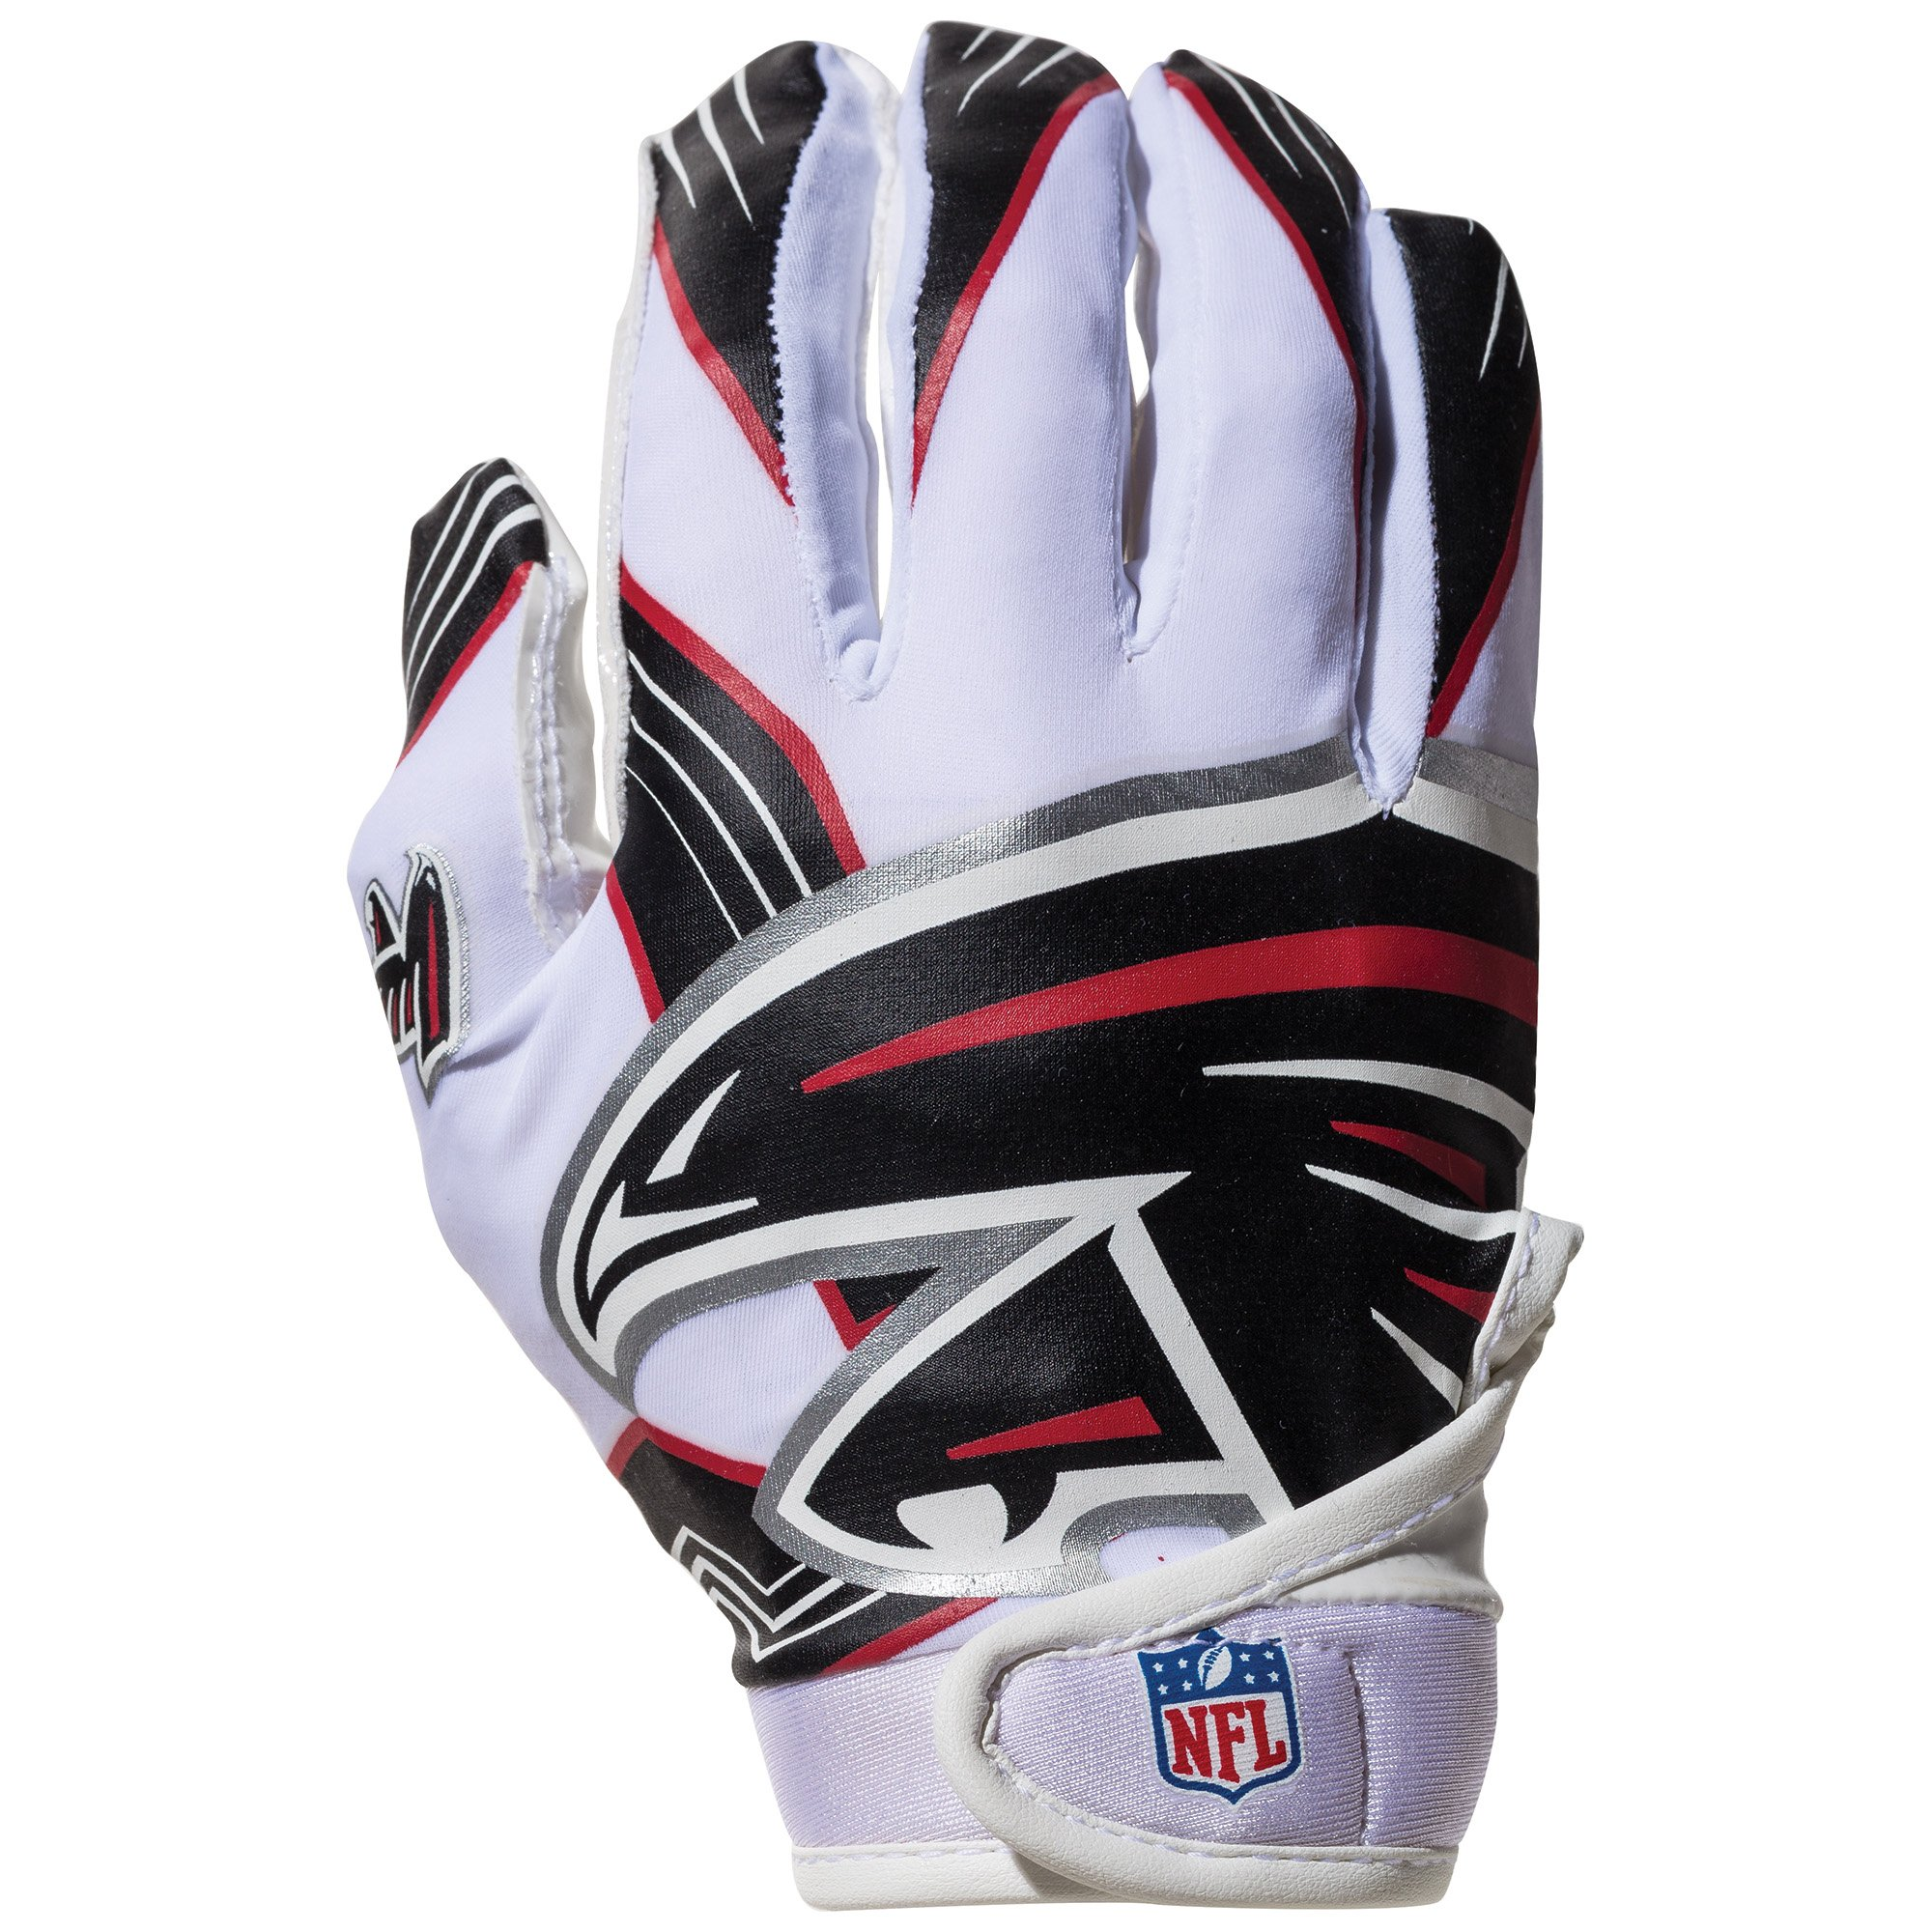 eb83e94baef Pierre Thomas Signed Game Used Official NFL Nike Gloves Auto PSA DNA  AB70087 88. Get Quotations · Franklin Sports NFL Team Licensed Youth  Football Receiver ...